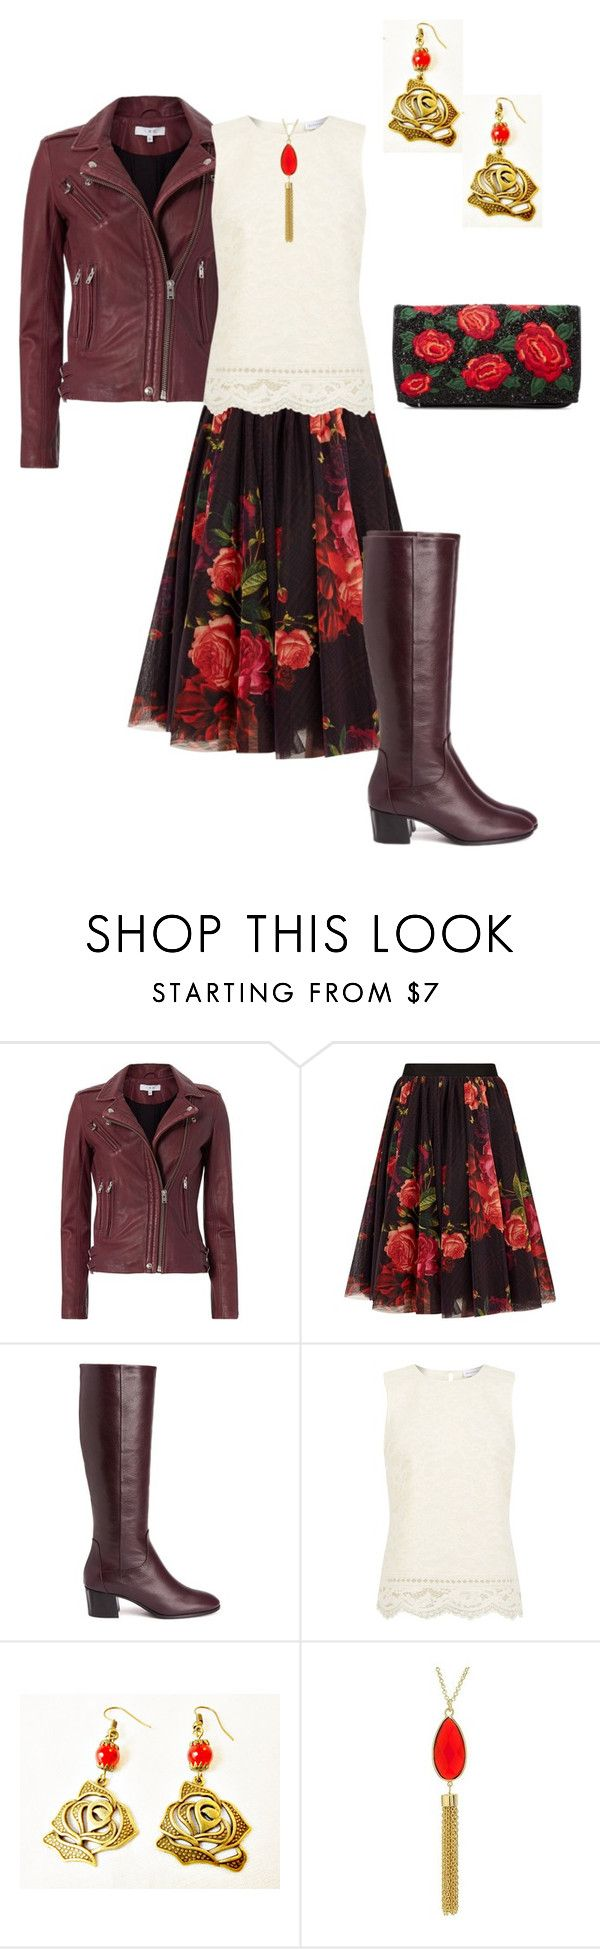 """Autumn Rose 2016"" by rovereddo ❤ liked on Polyvore featuring IRO, Ted Baker, Aquatalia by Marvin K., Warehouse, Target and Alice + Olivia"